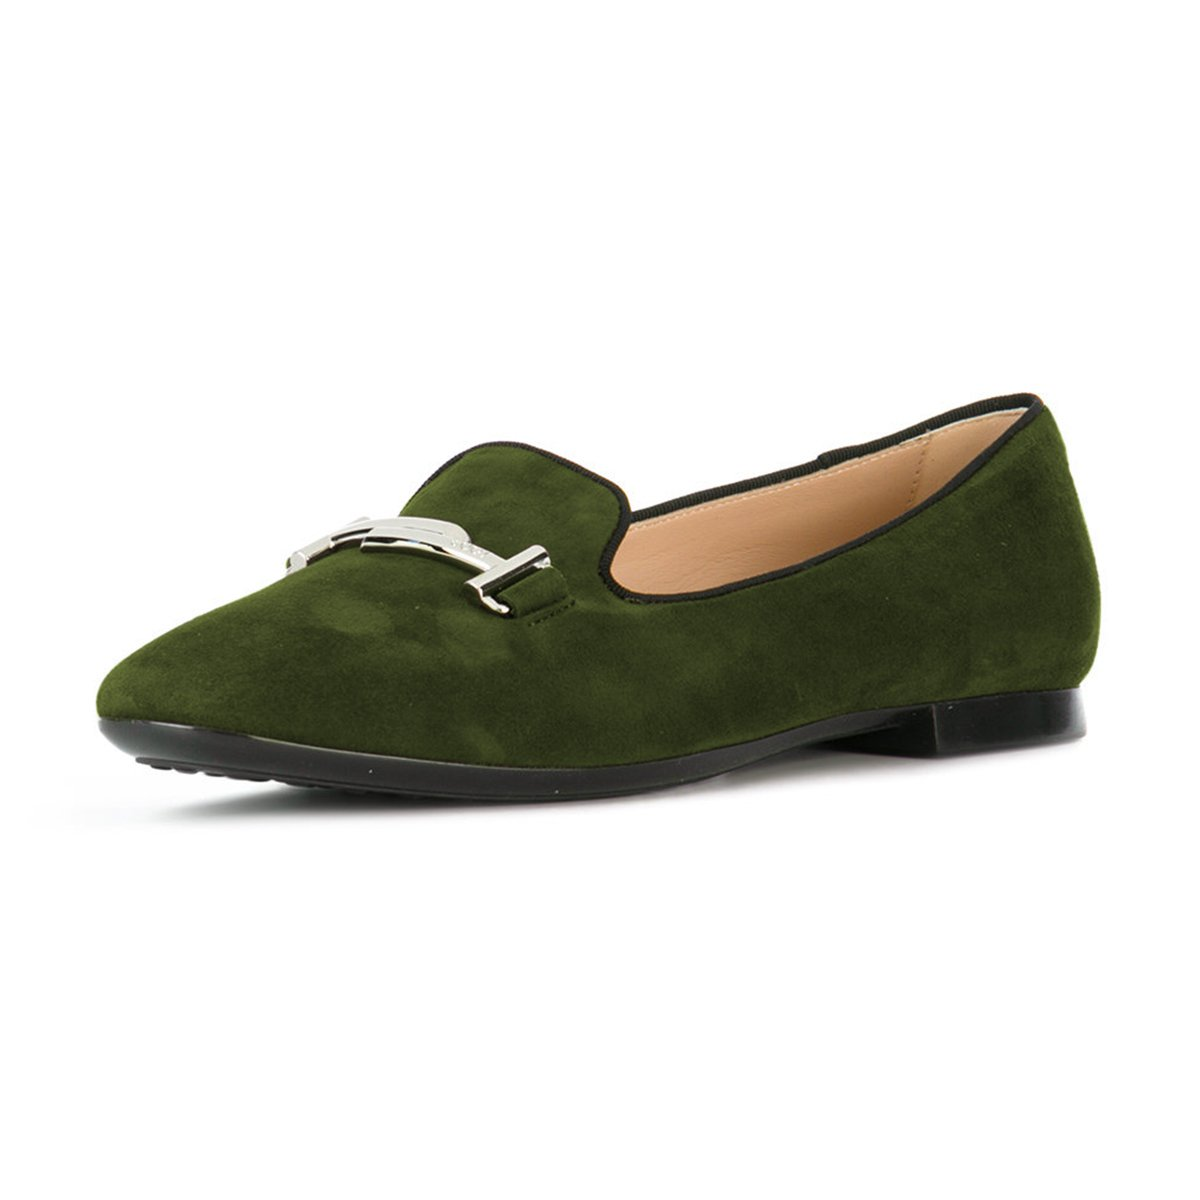 XYD Comfortable Low Heel Slip On Suede Flats Pointed Toe Ballet Loafer Dress Shoes for Women B0794R5M2X 7 B(M) US|Dark Green